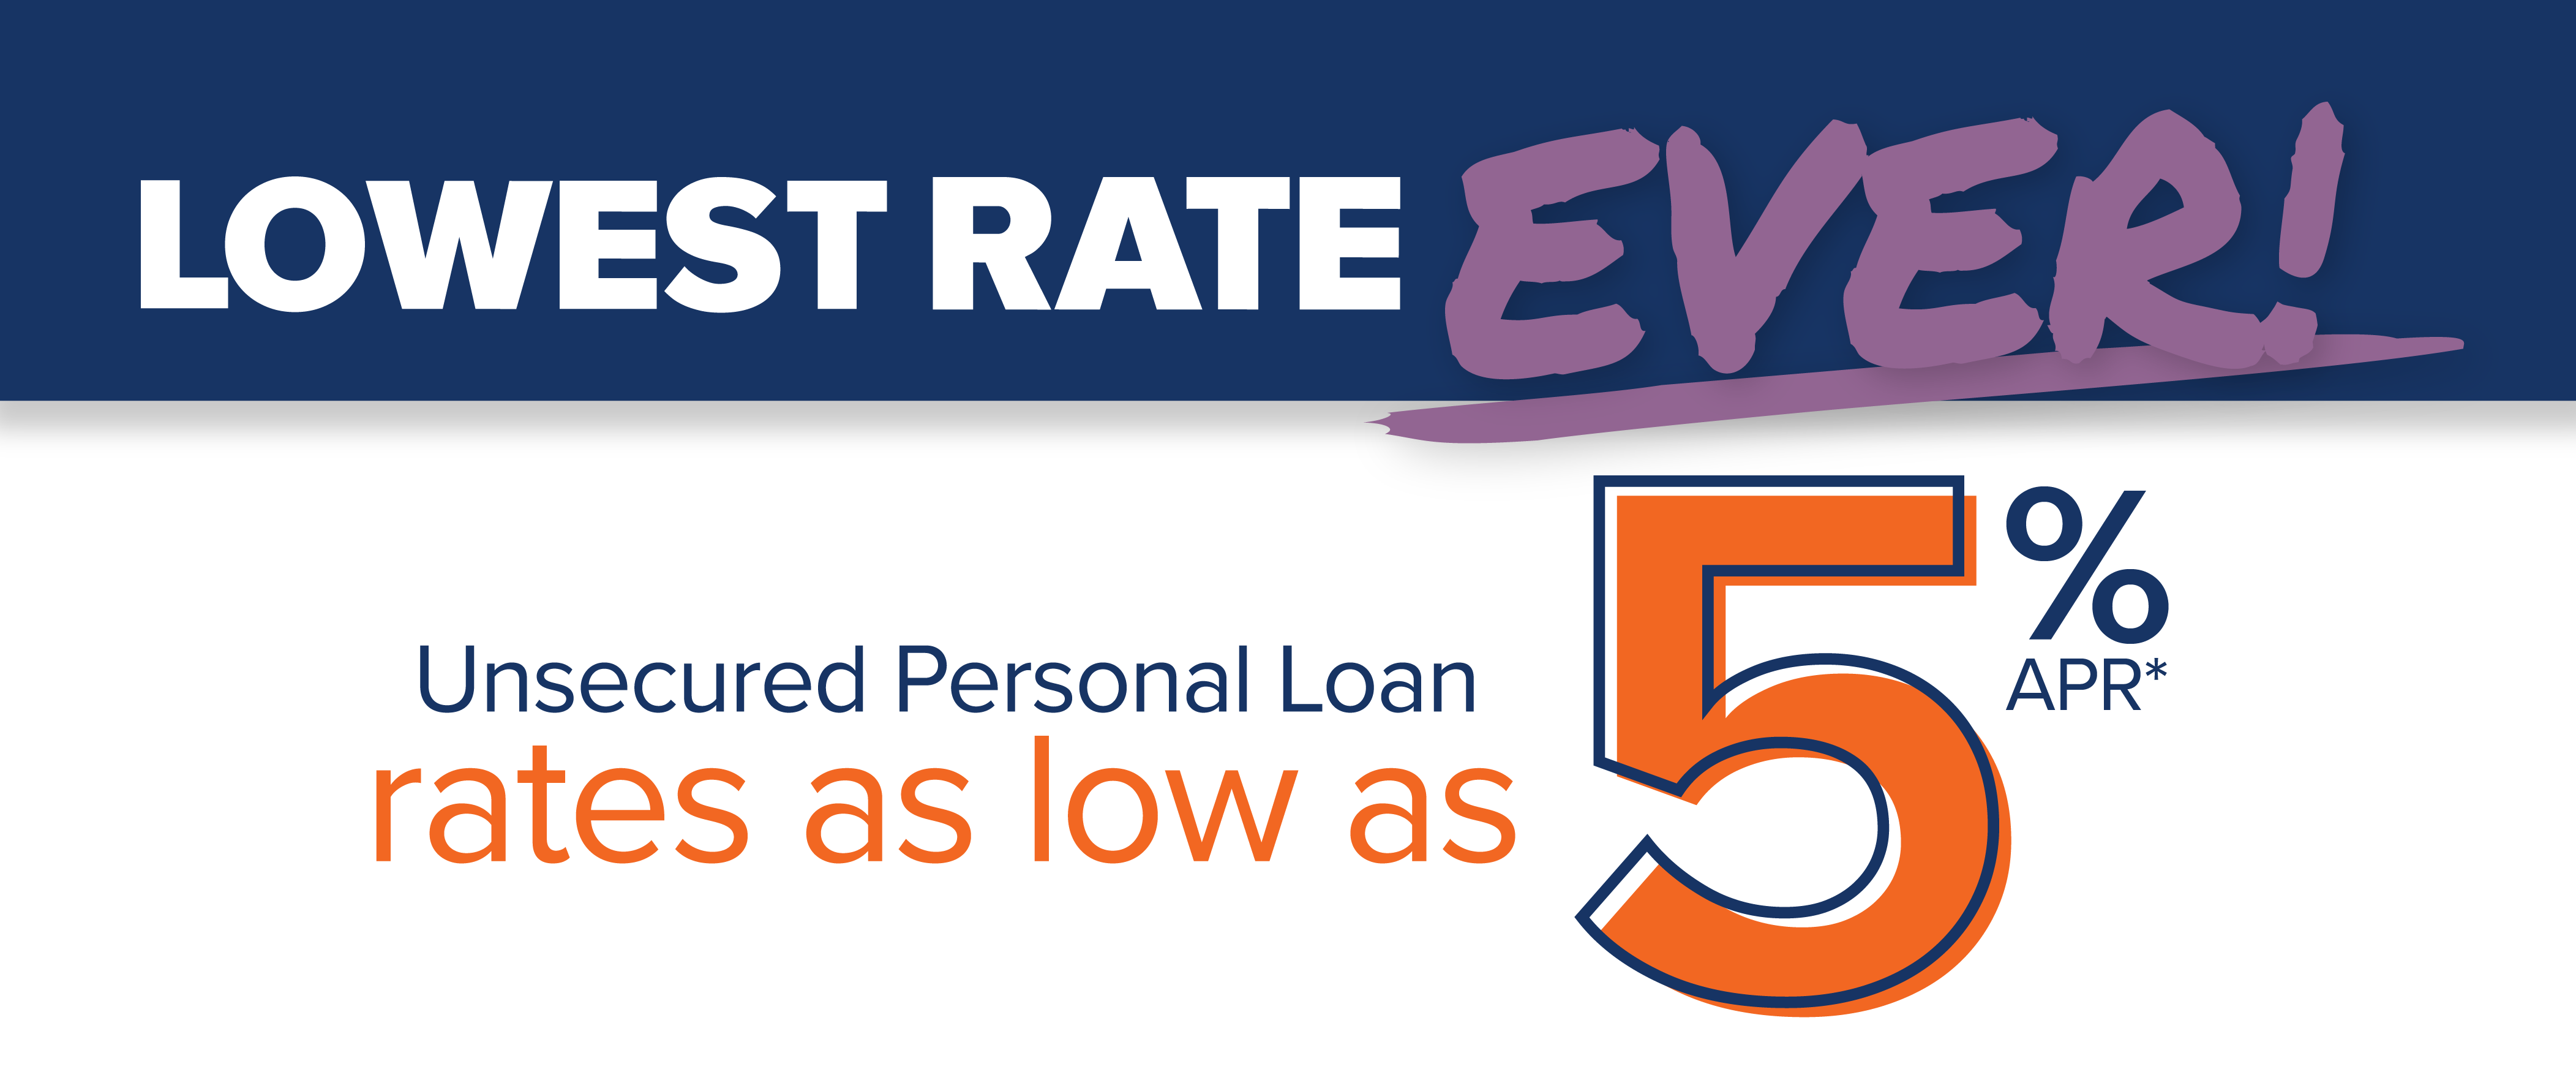 Unsecured Personal Loan rates as low as 5% APR*